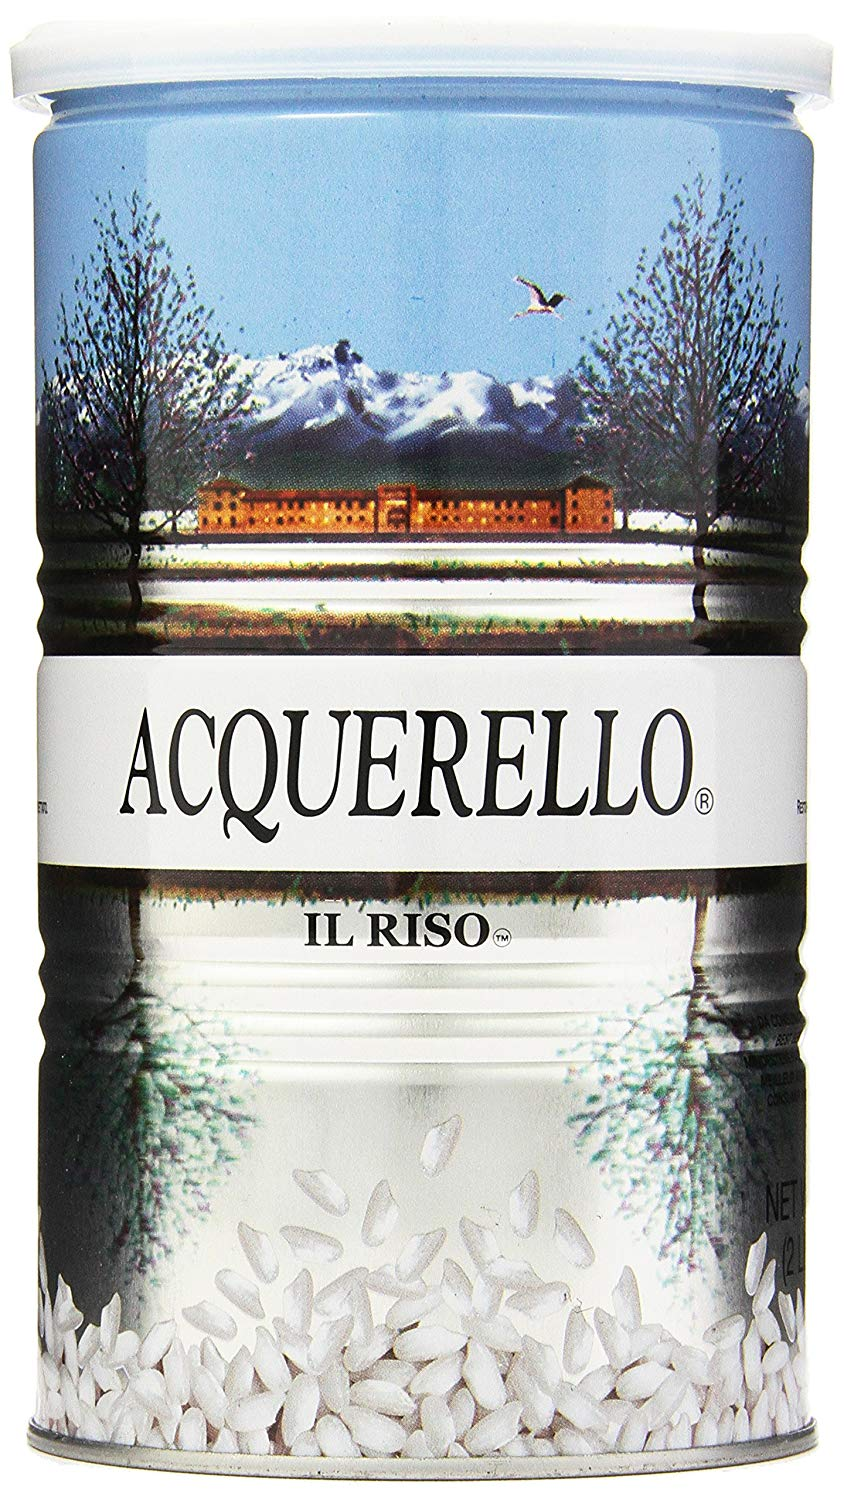 Acquerello Rice, 2 lb 3 oz.